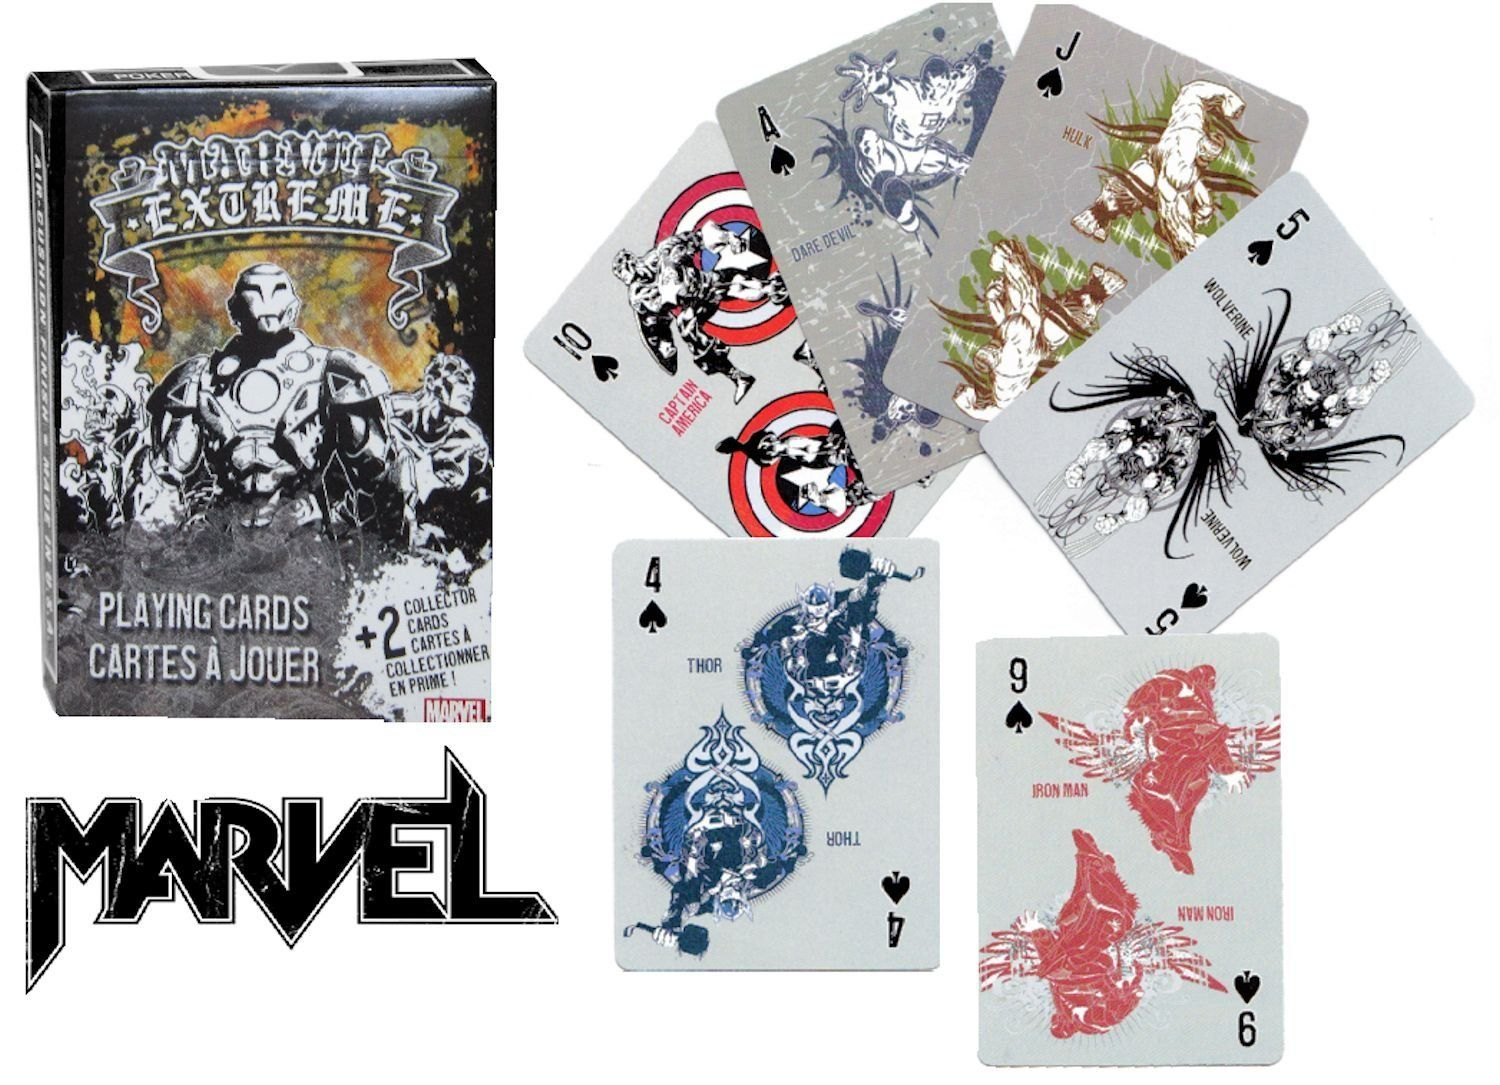 Amazon.com: Marvel Extreme Playing Cards ~ Featuring ~ Thor, Iron Man, Captain America, Incredible Hulk, Silver Surfer and More!: Toys & Games